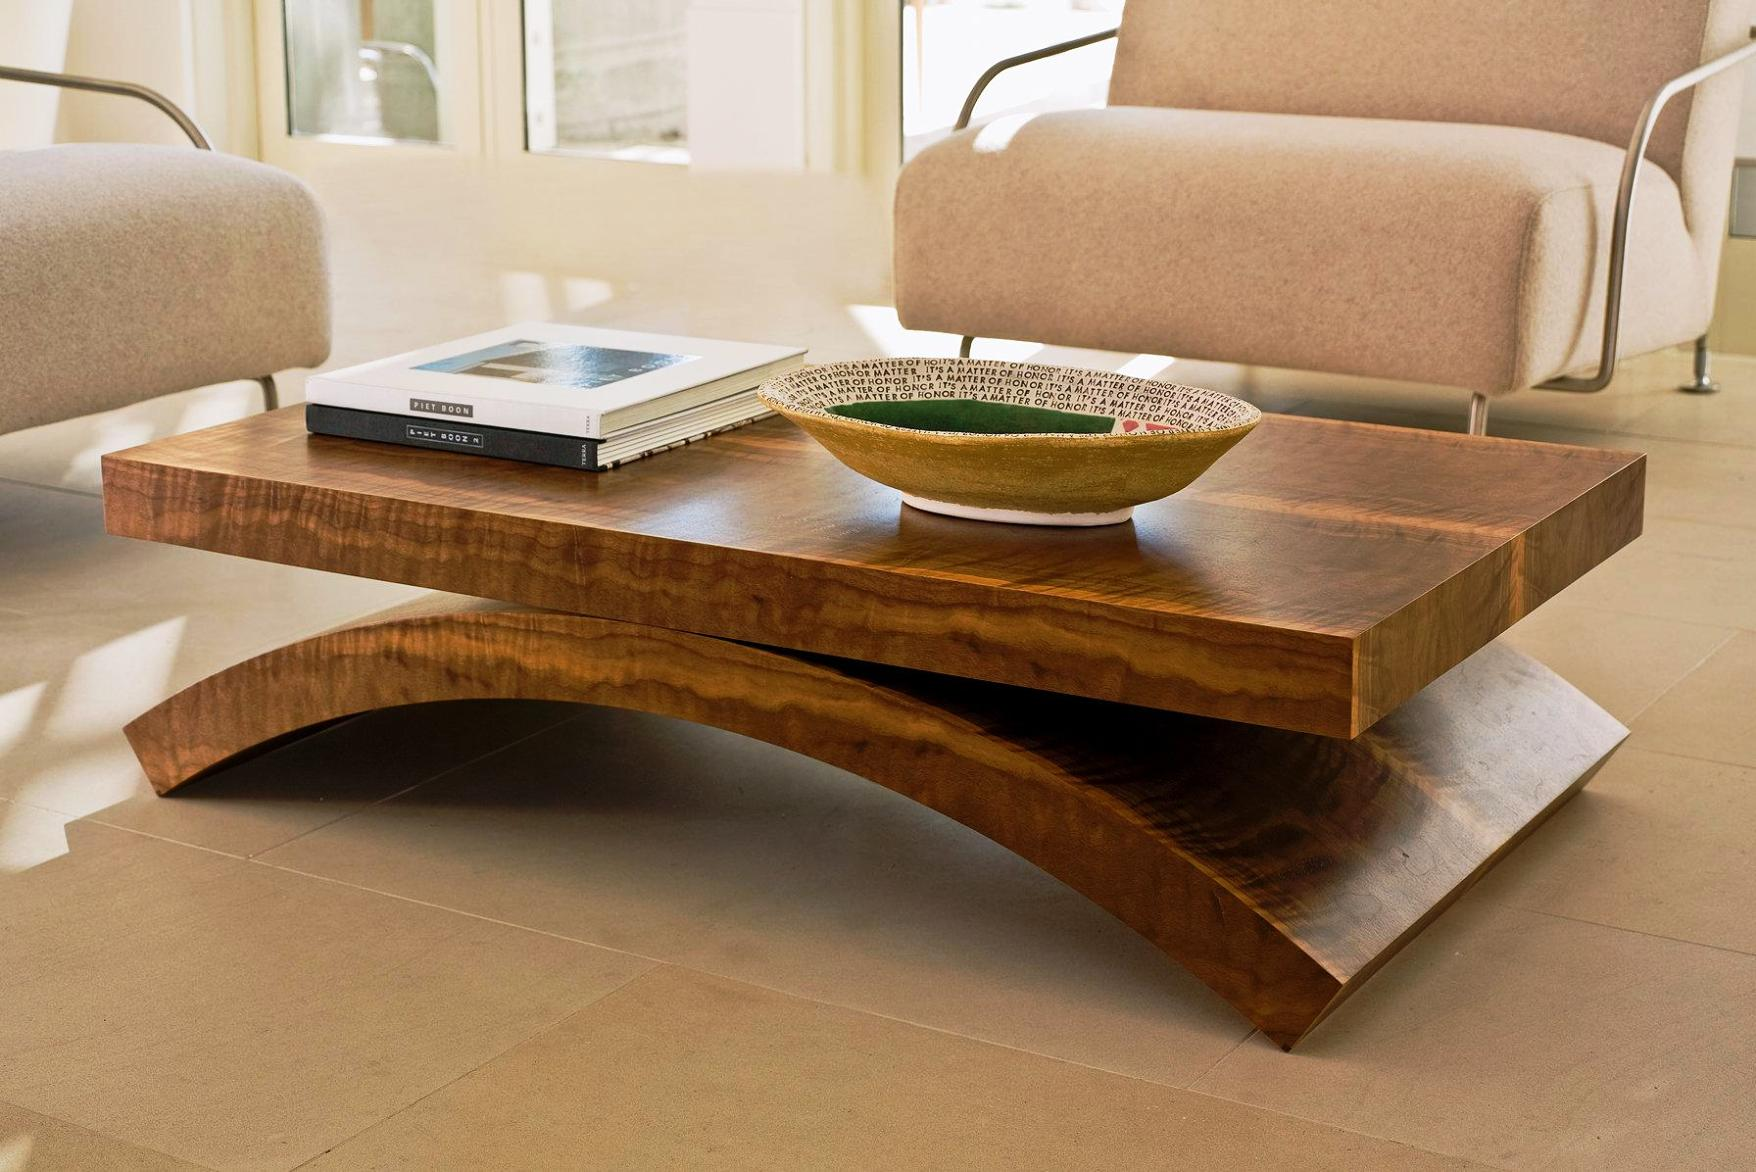 Oversized Coffee Table Tray Oversized Round Coffee Tables Beautiful Square Brown Lacquered Wooden Coffee Table For Living Room Extra Large Round Coffee Table (View 8 of 10)